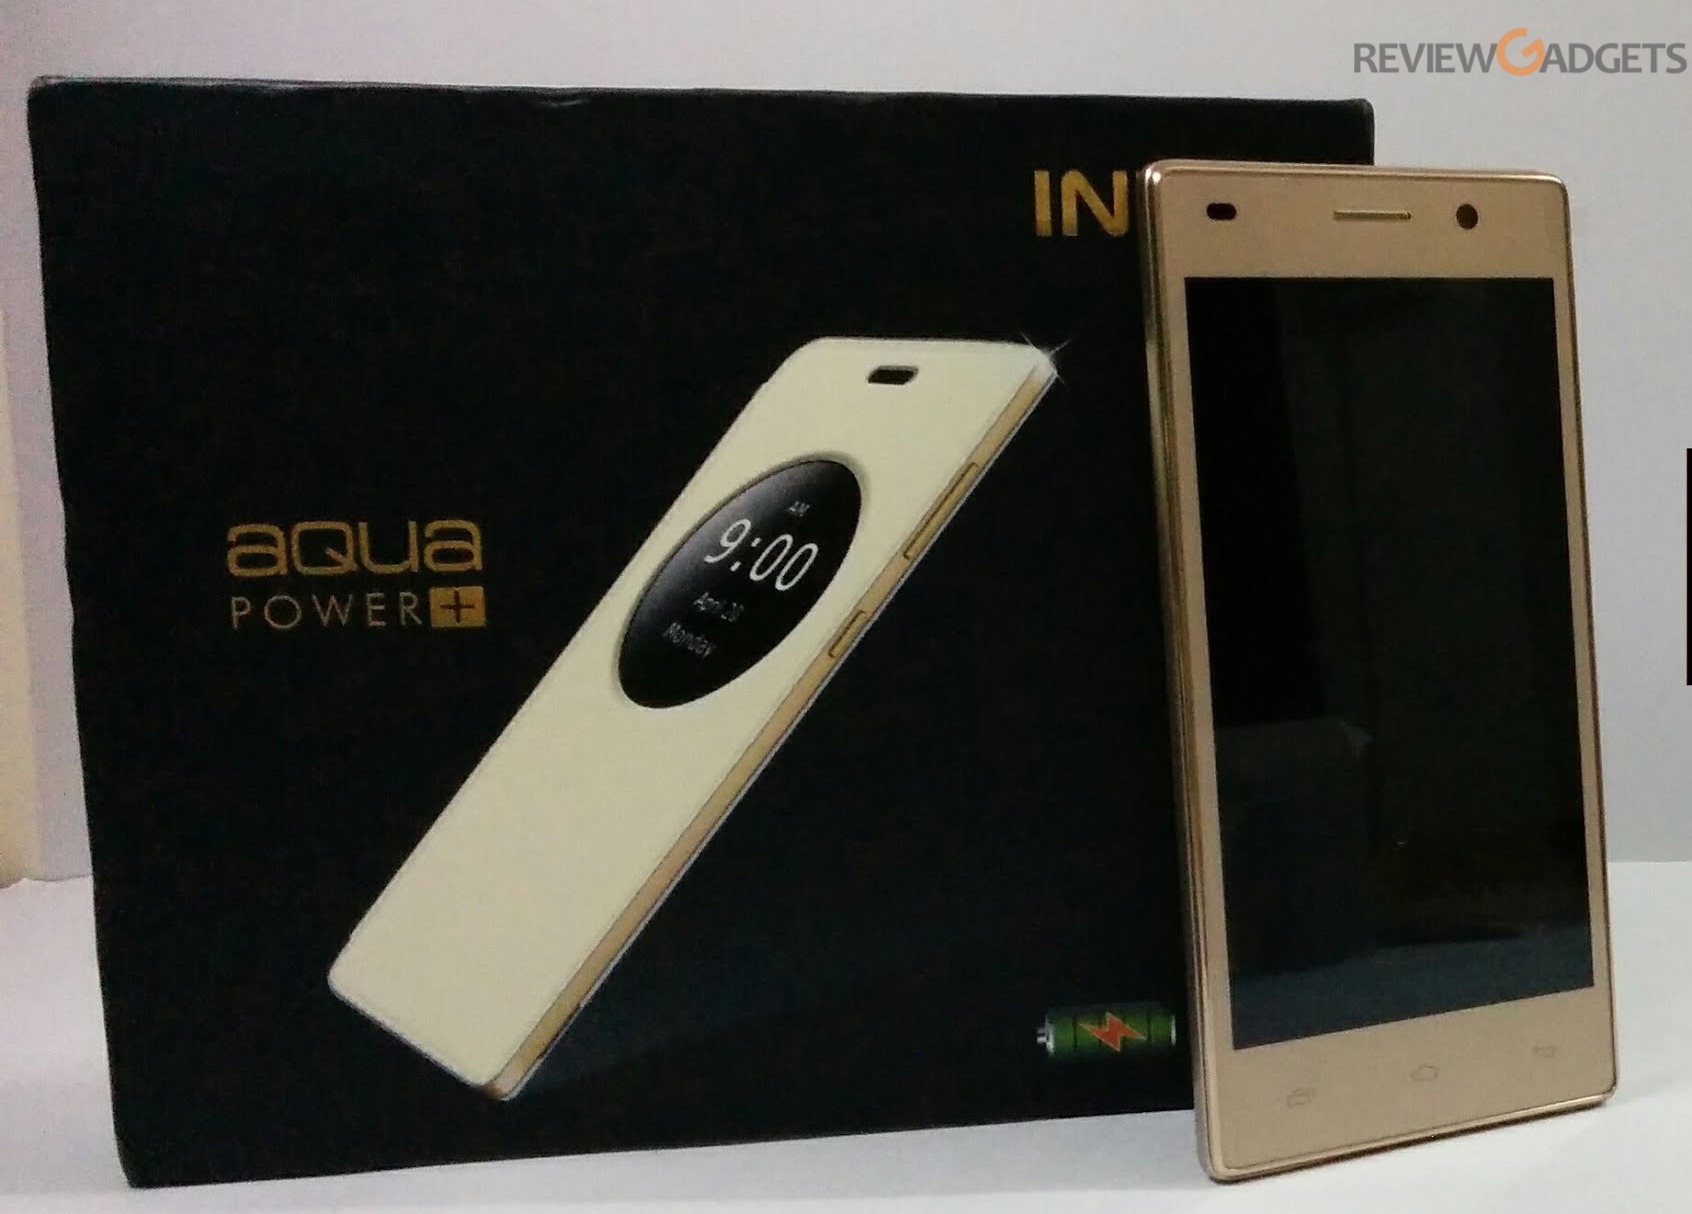 Intex Aqua Power launched